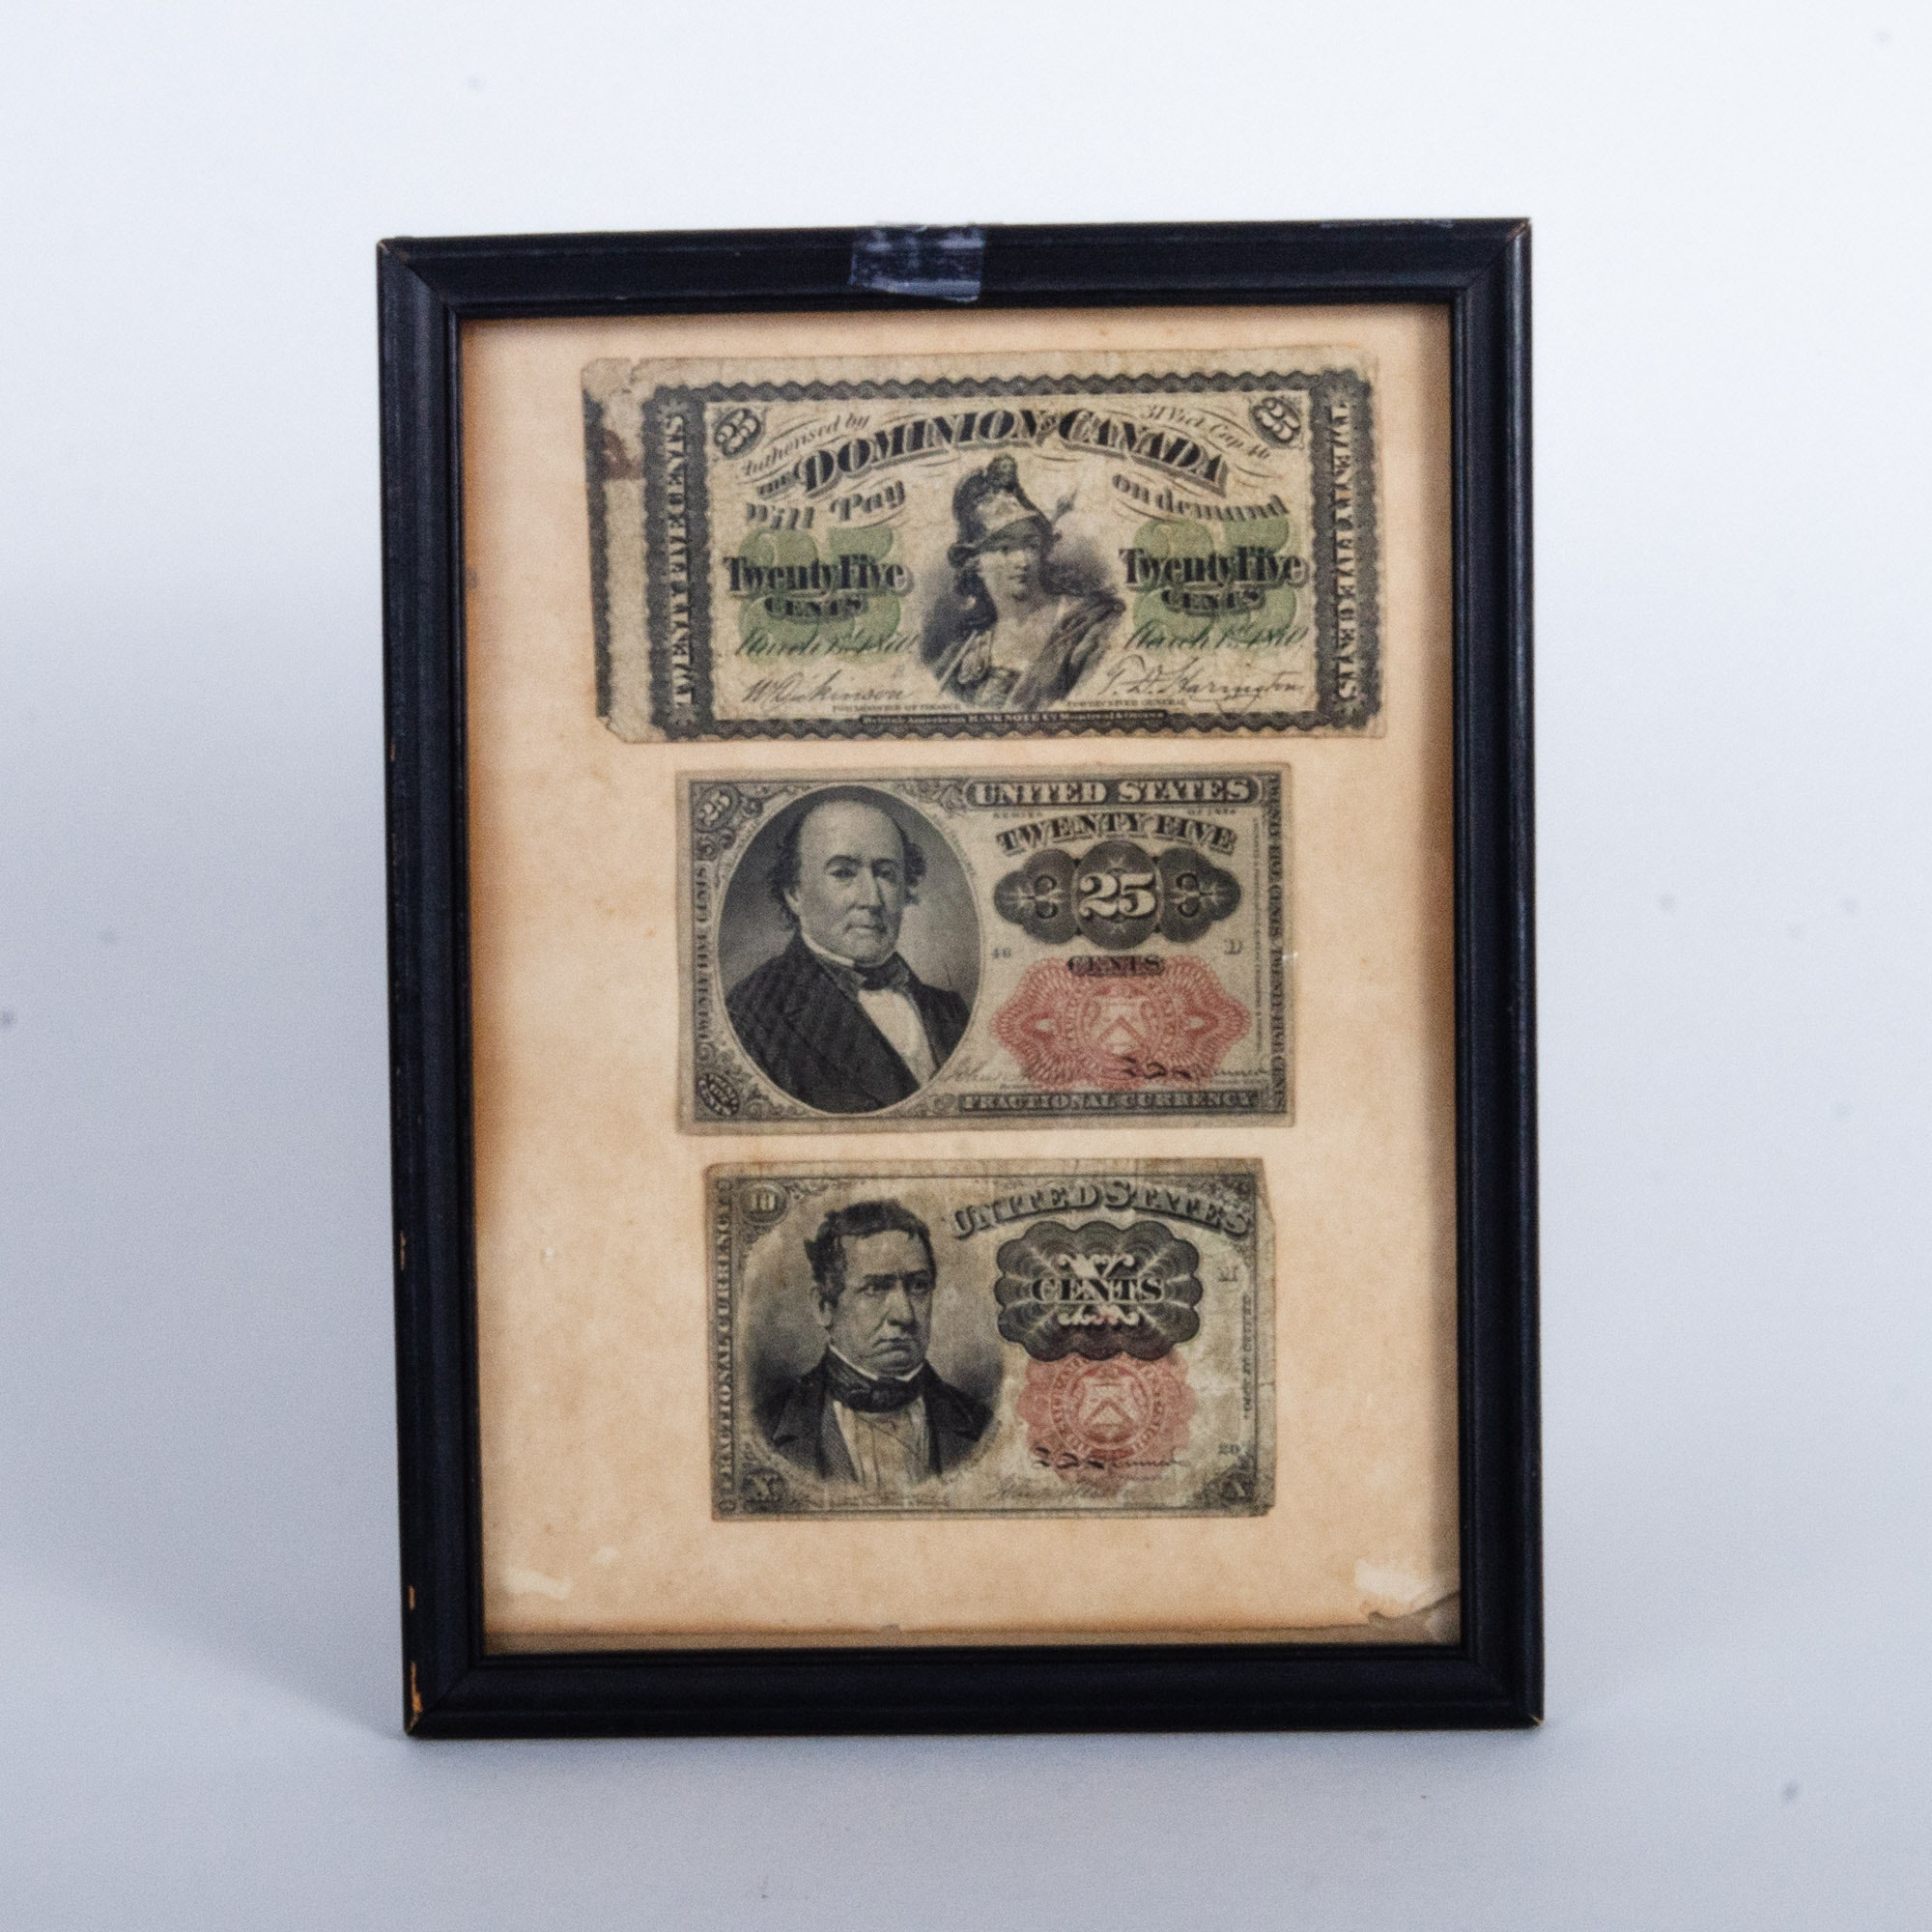 United States and Canada Fractional Currency Notes